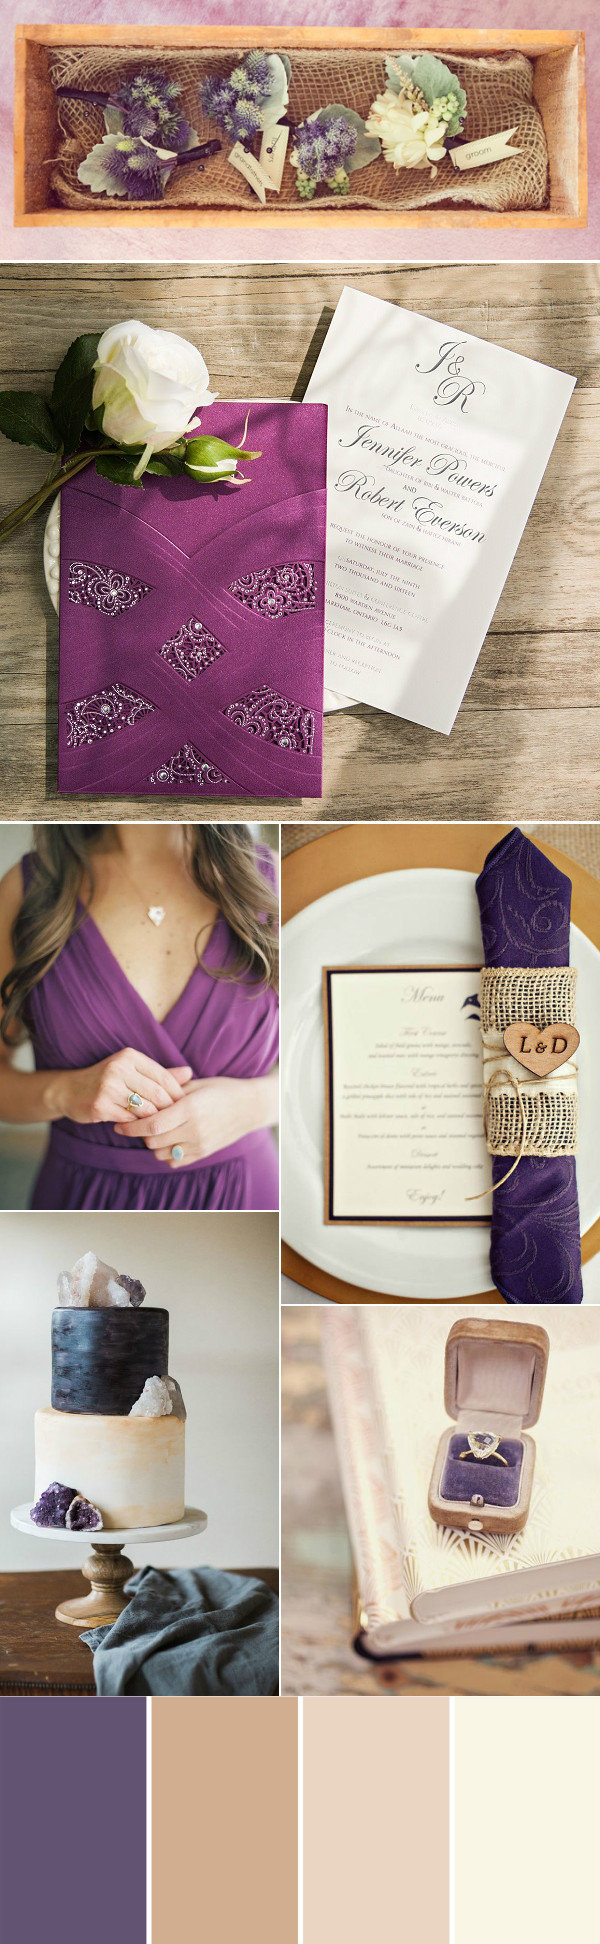 rustic purple brwon and nude fall wedding color ideas